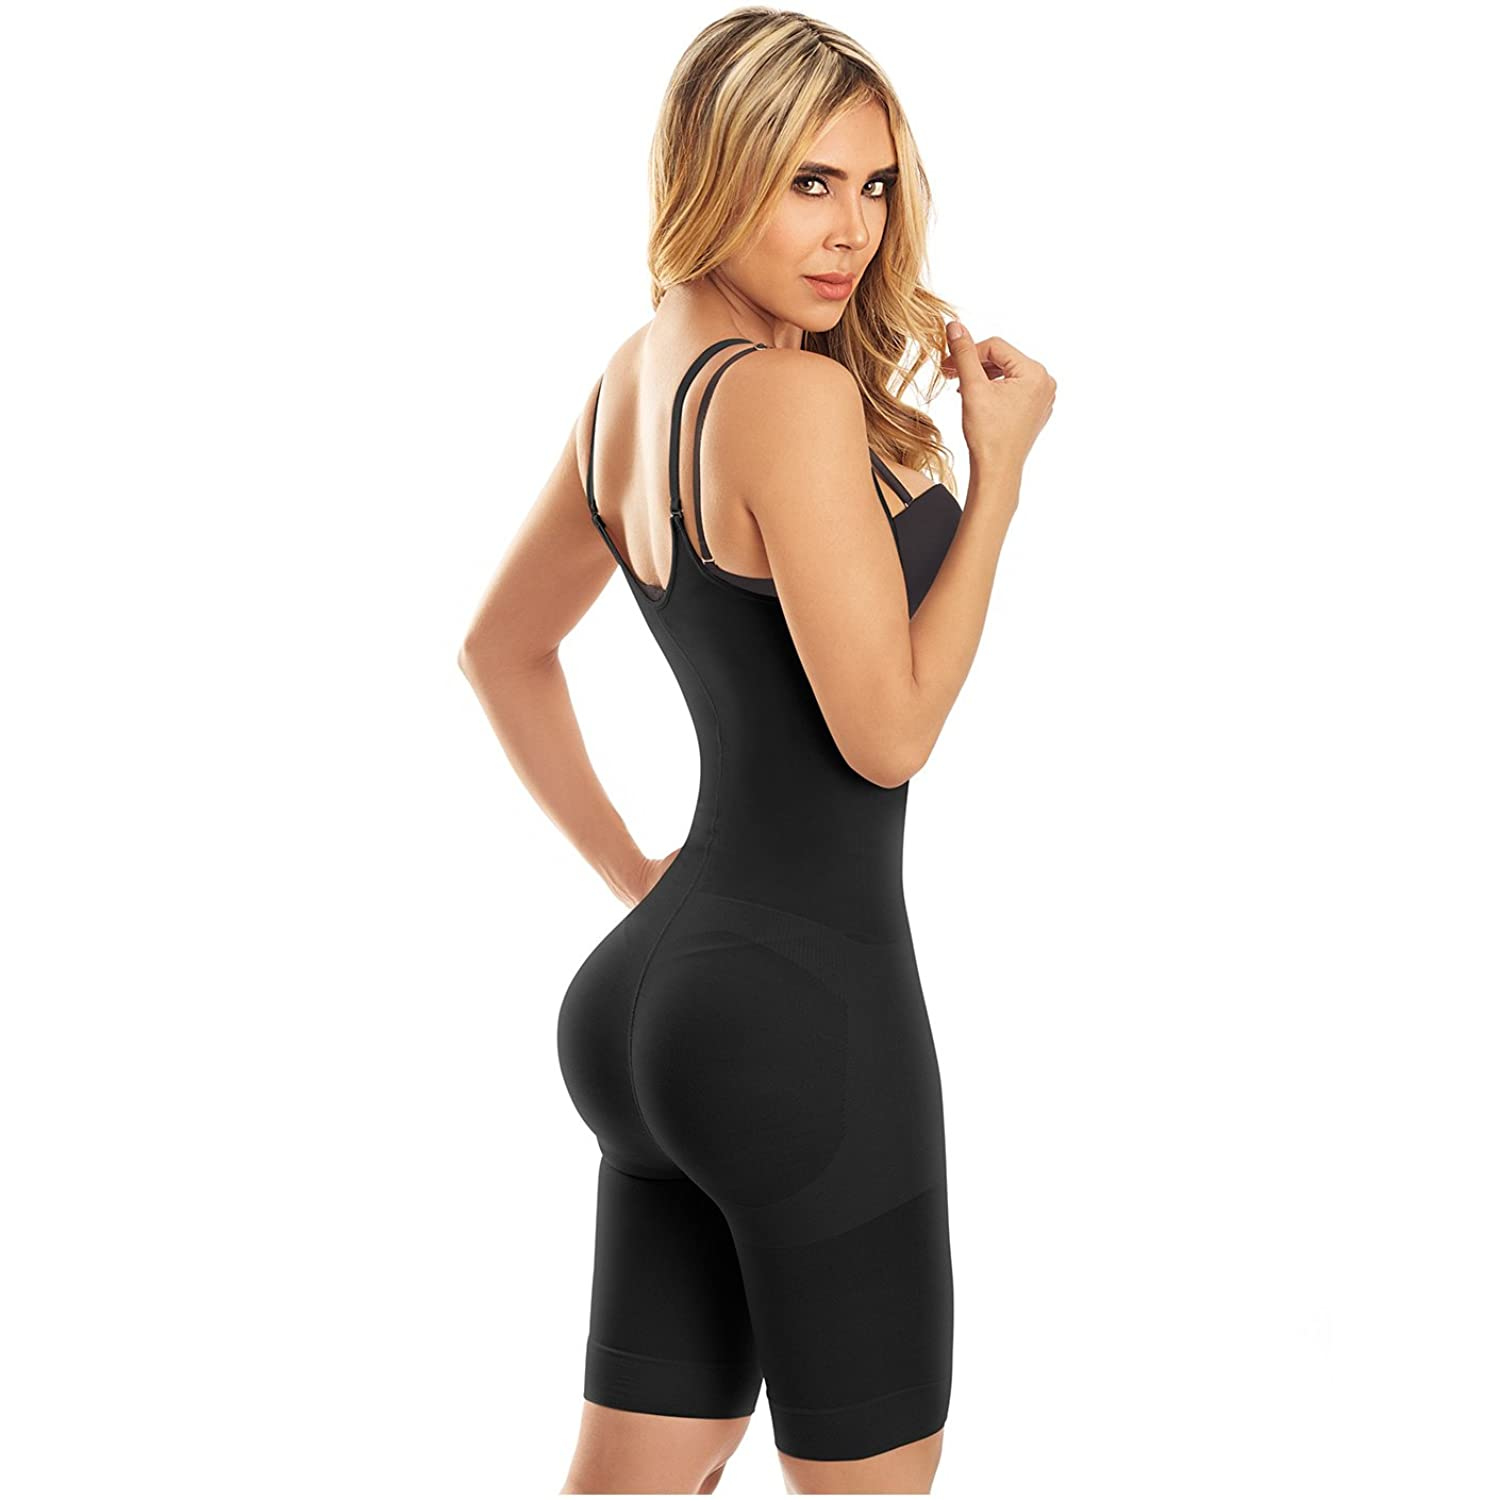 Laty Rose Butt Lifter Shapewear Open Bust Fajas Colombianas Reductoras Black XL at Amazon Womens Clothing store: